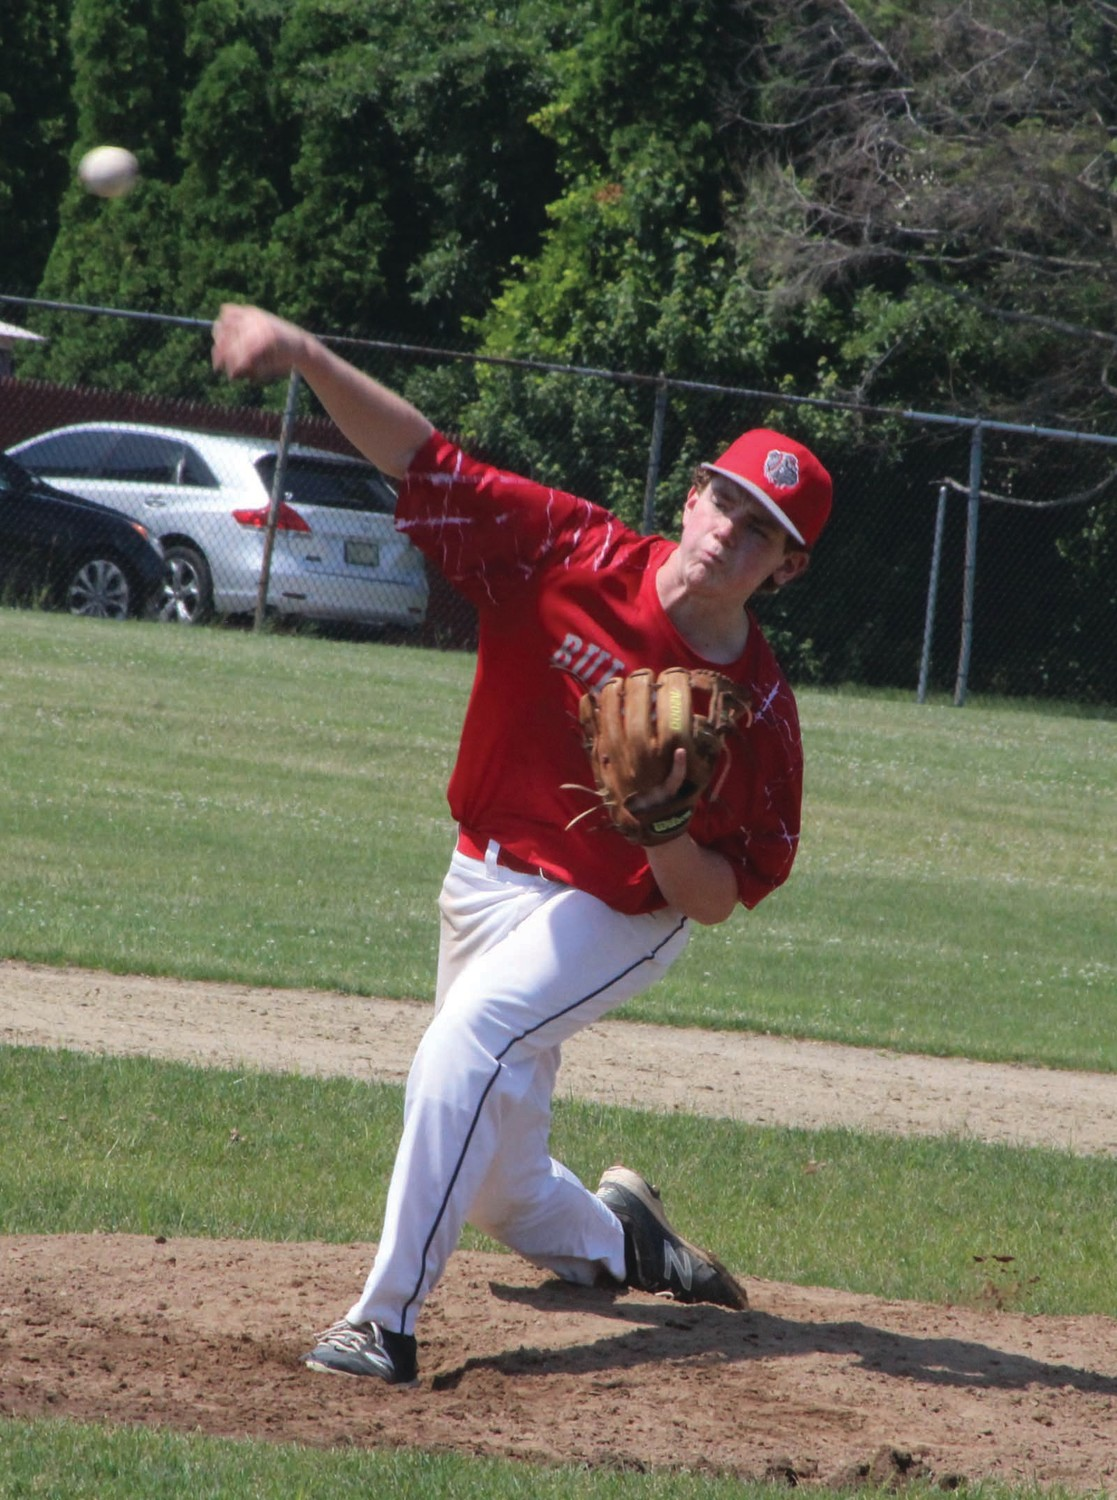 ON THE DIAMOND: Bulldogs pitcher Noah Rennick delivers against Warwick Pal.